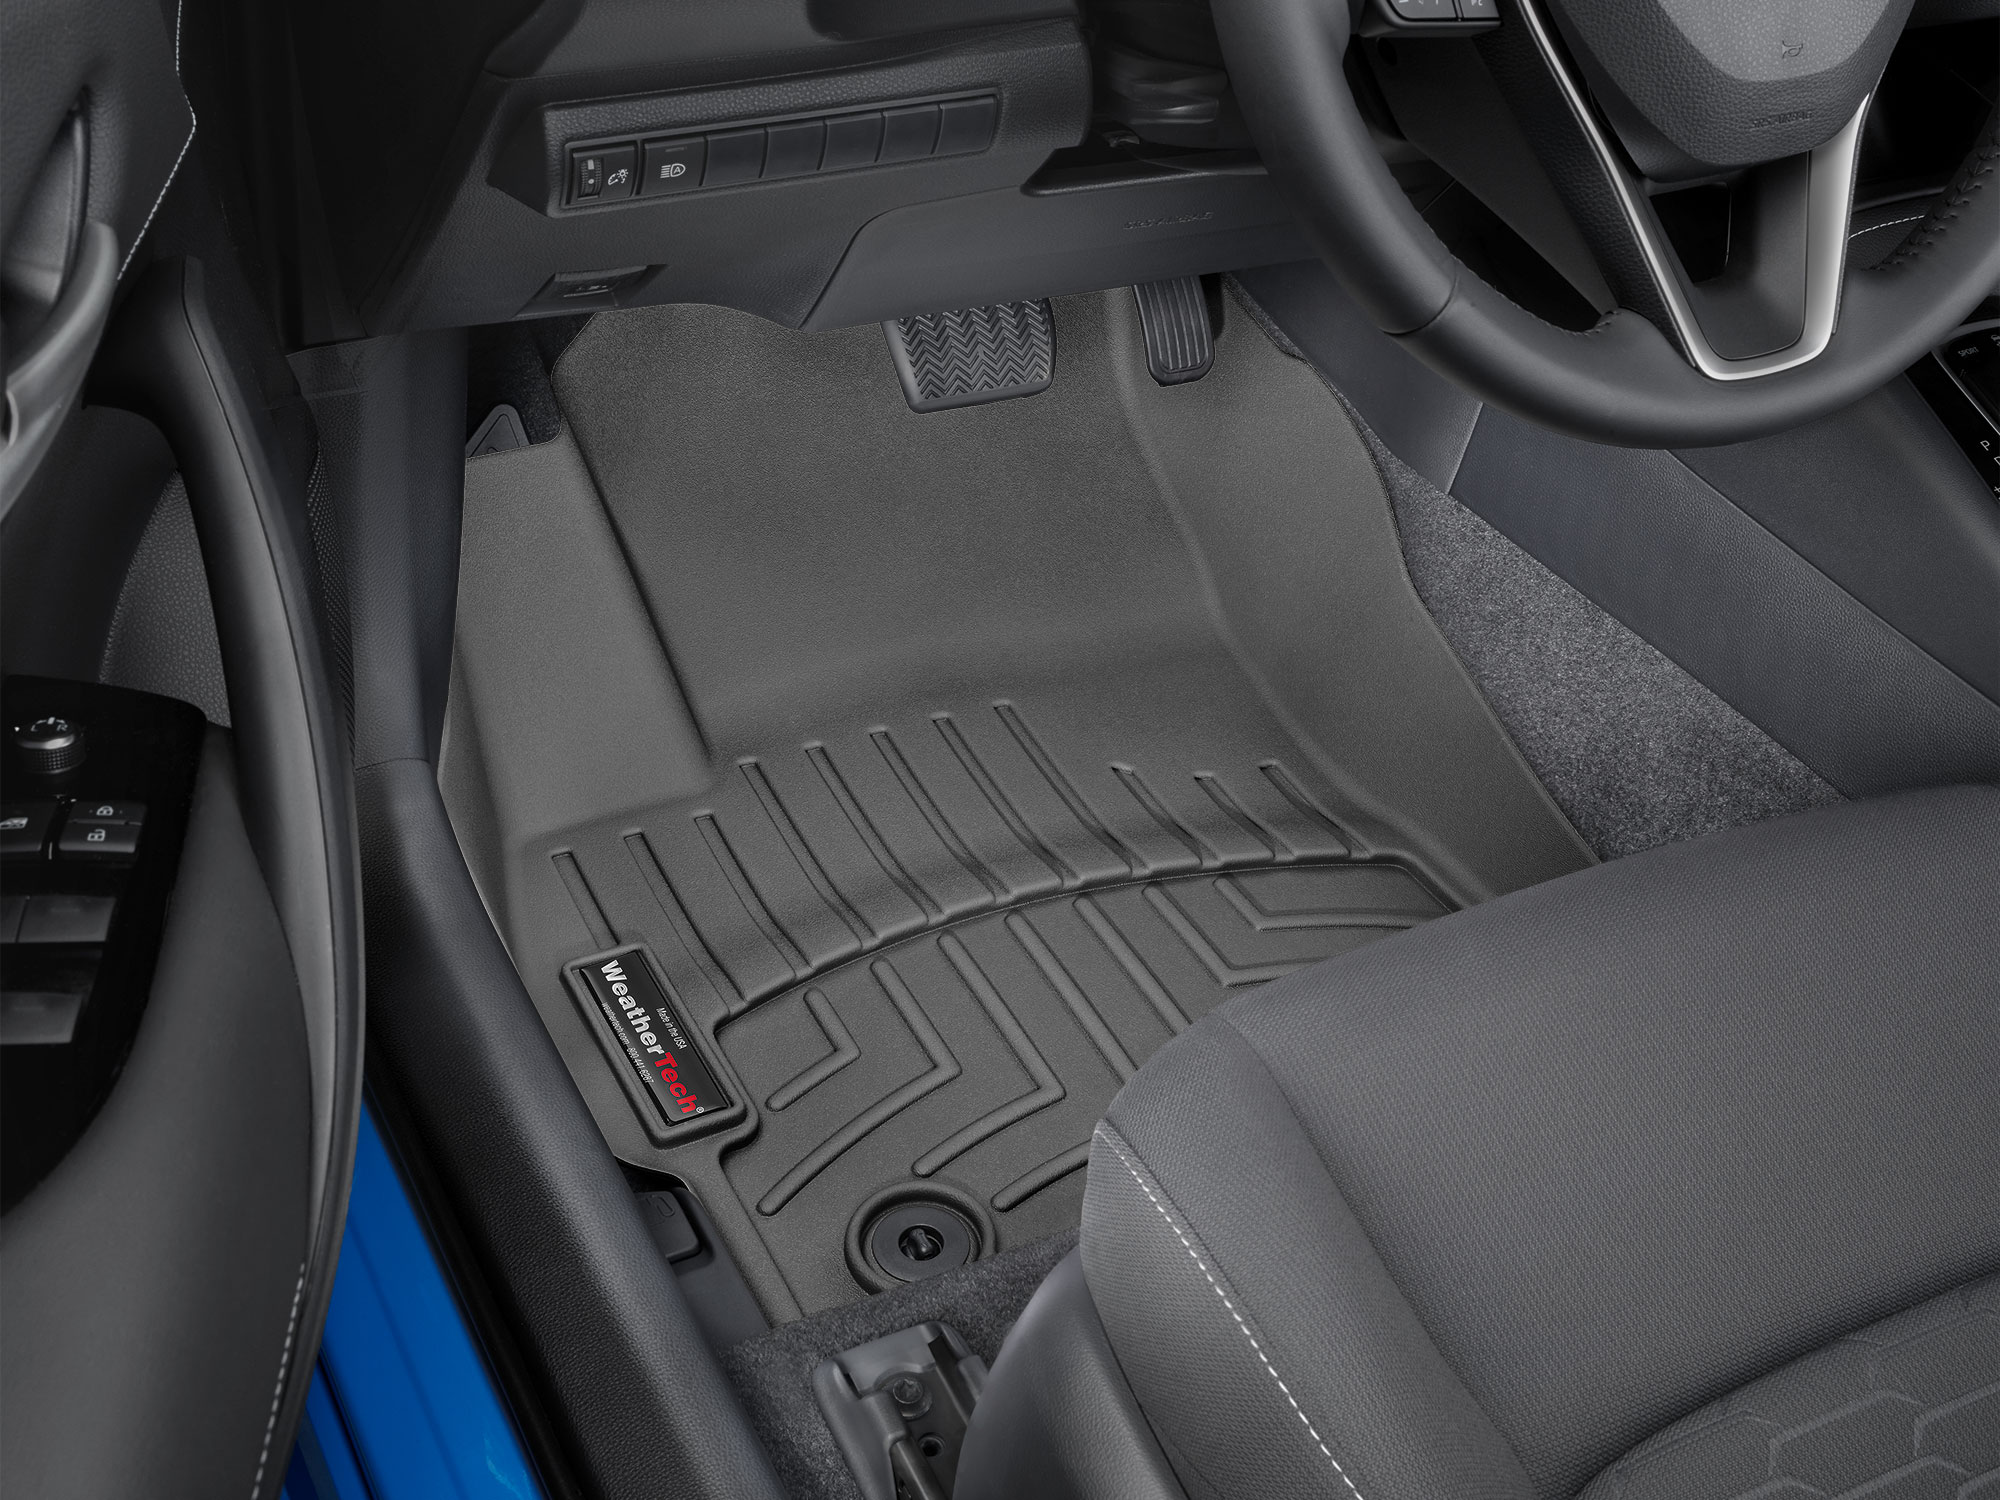 hight resolution of 2019 toyota corolla hatchback avm hd floor mats heavy duty flexible trim to fit mats weathertech